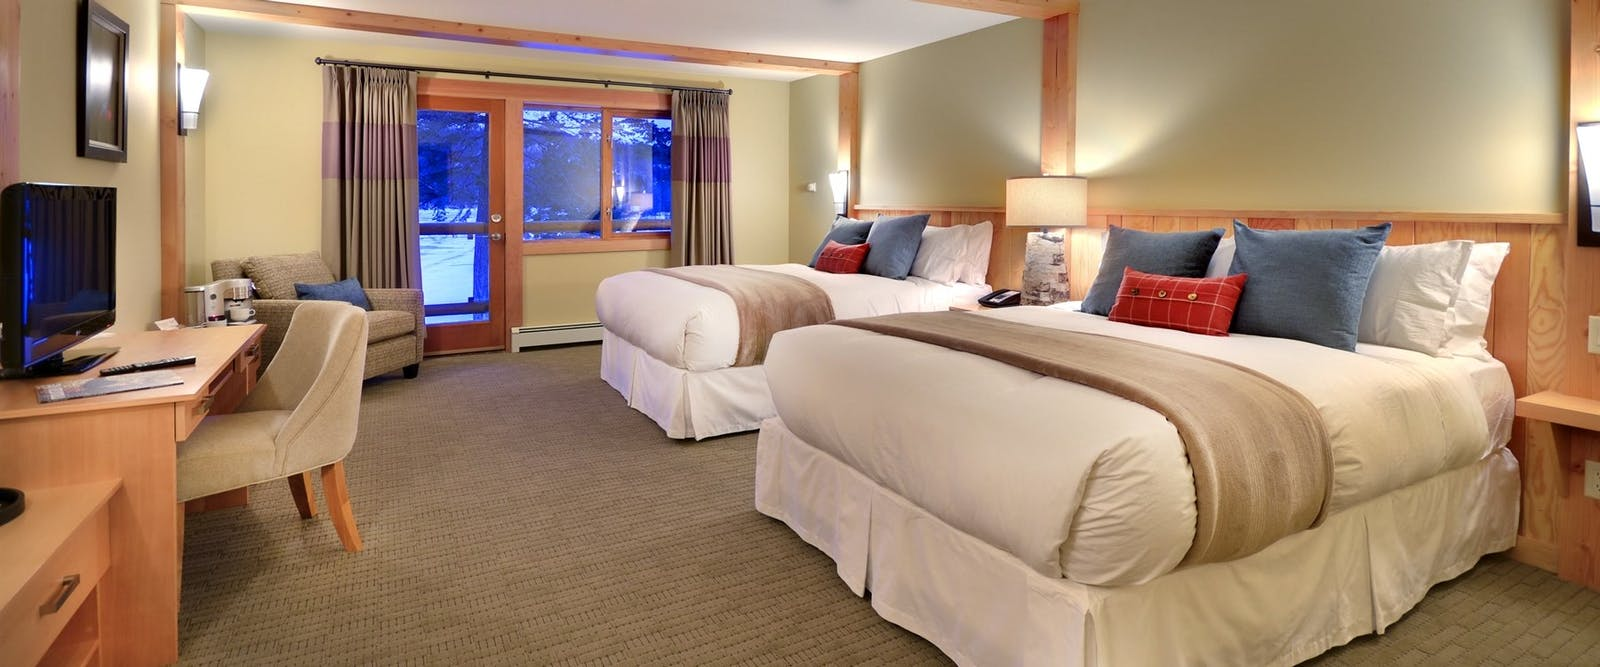 Double Room at Tyax Wilderness Resort & Spa